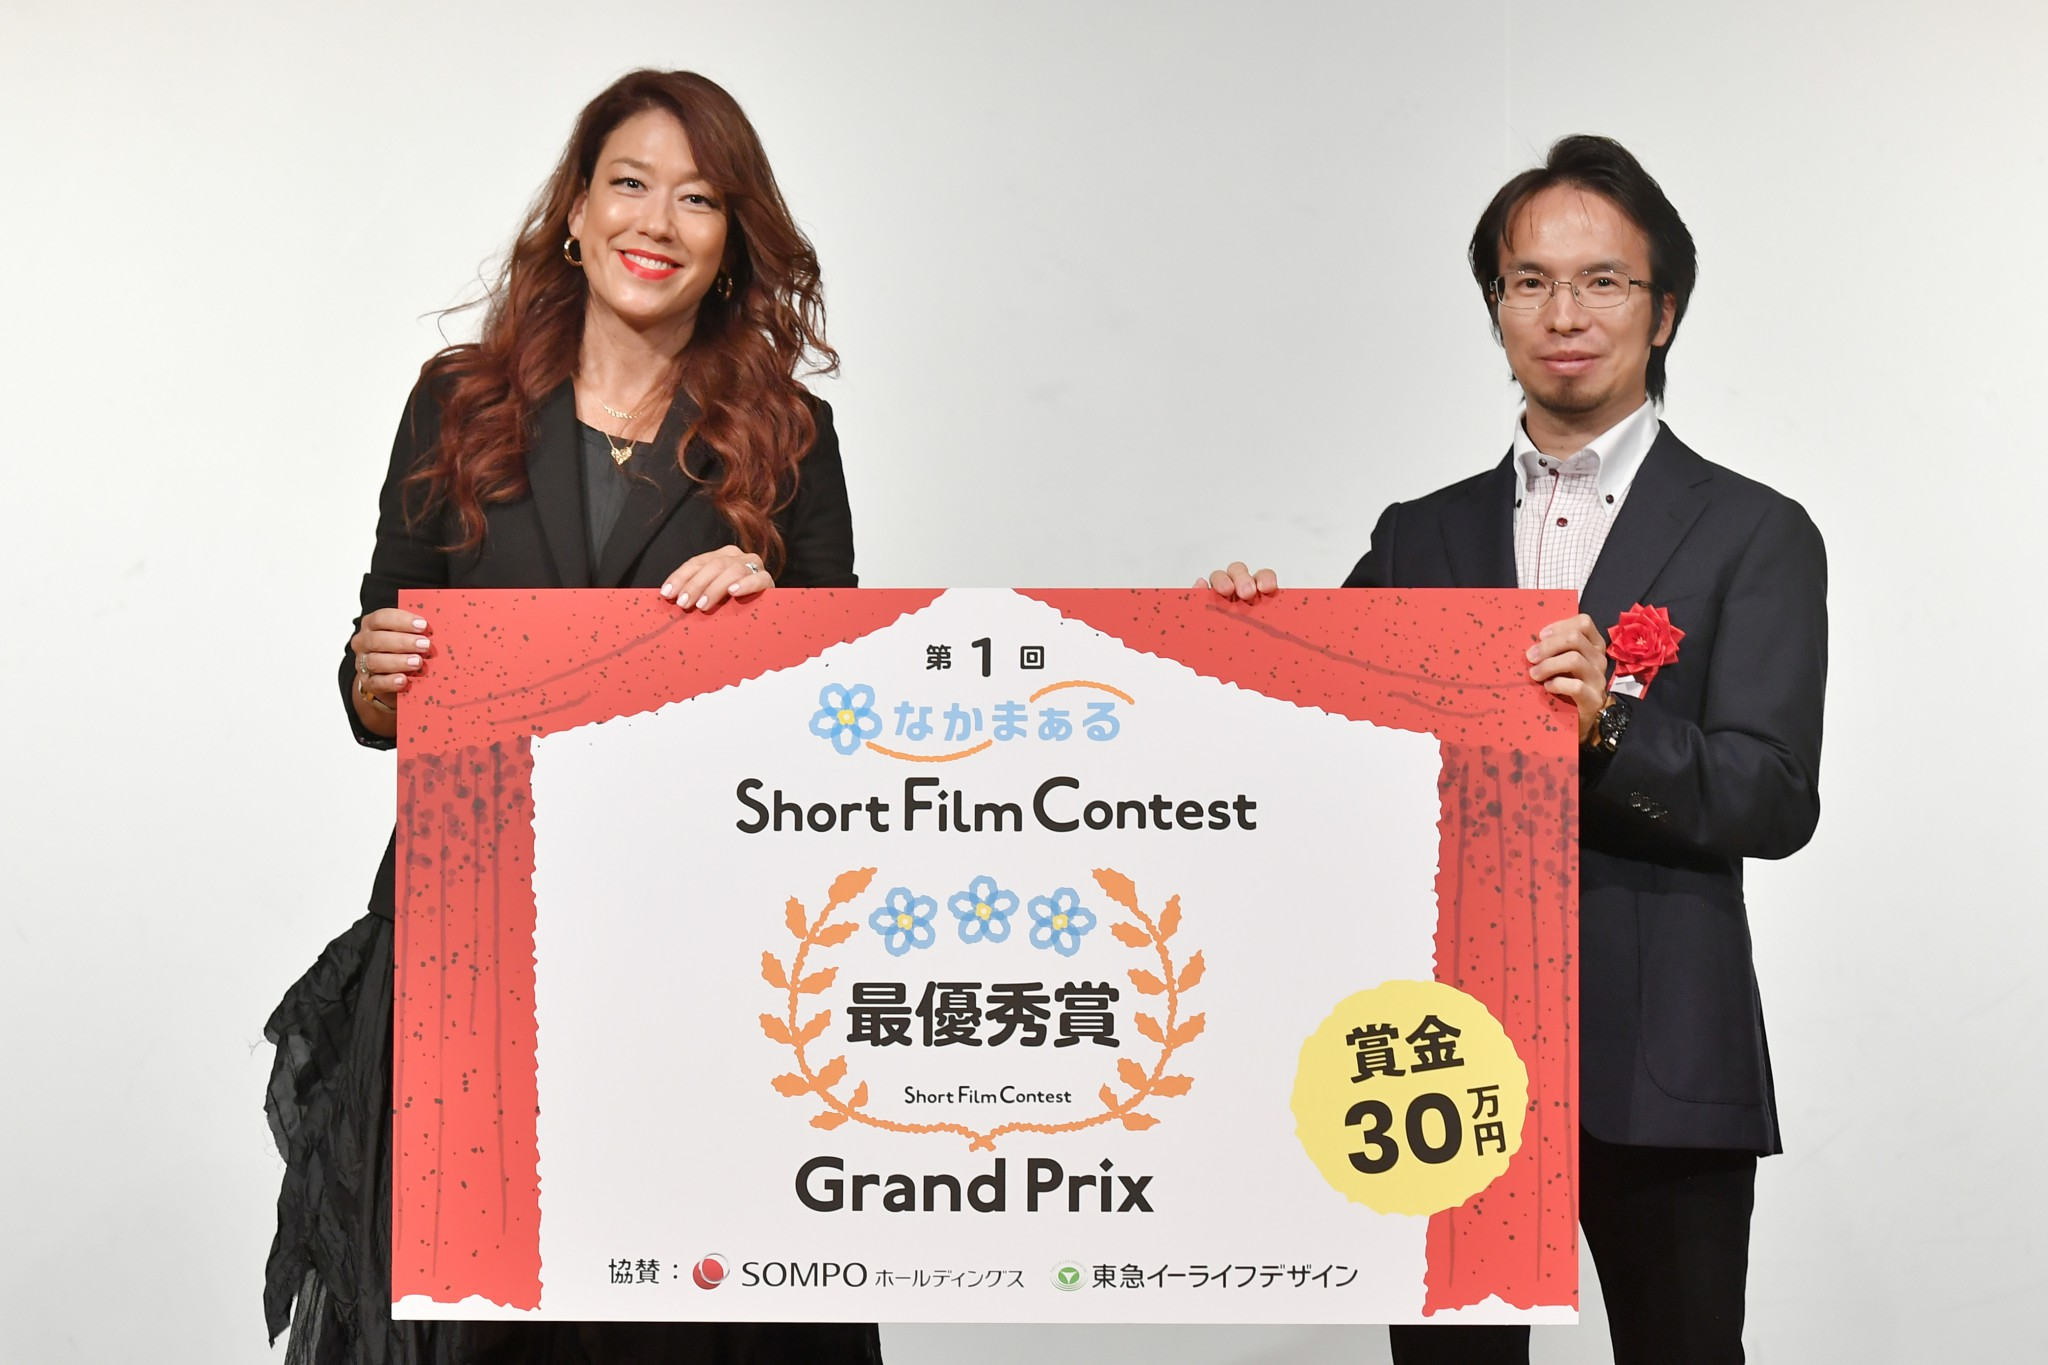 Brillia SHORTSHORTS THEATER ONLINEの告知クリップが